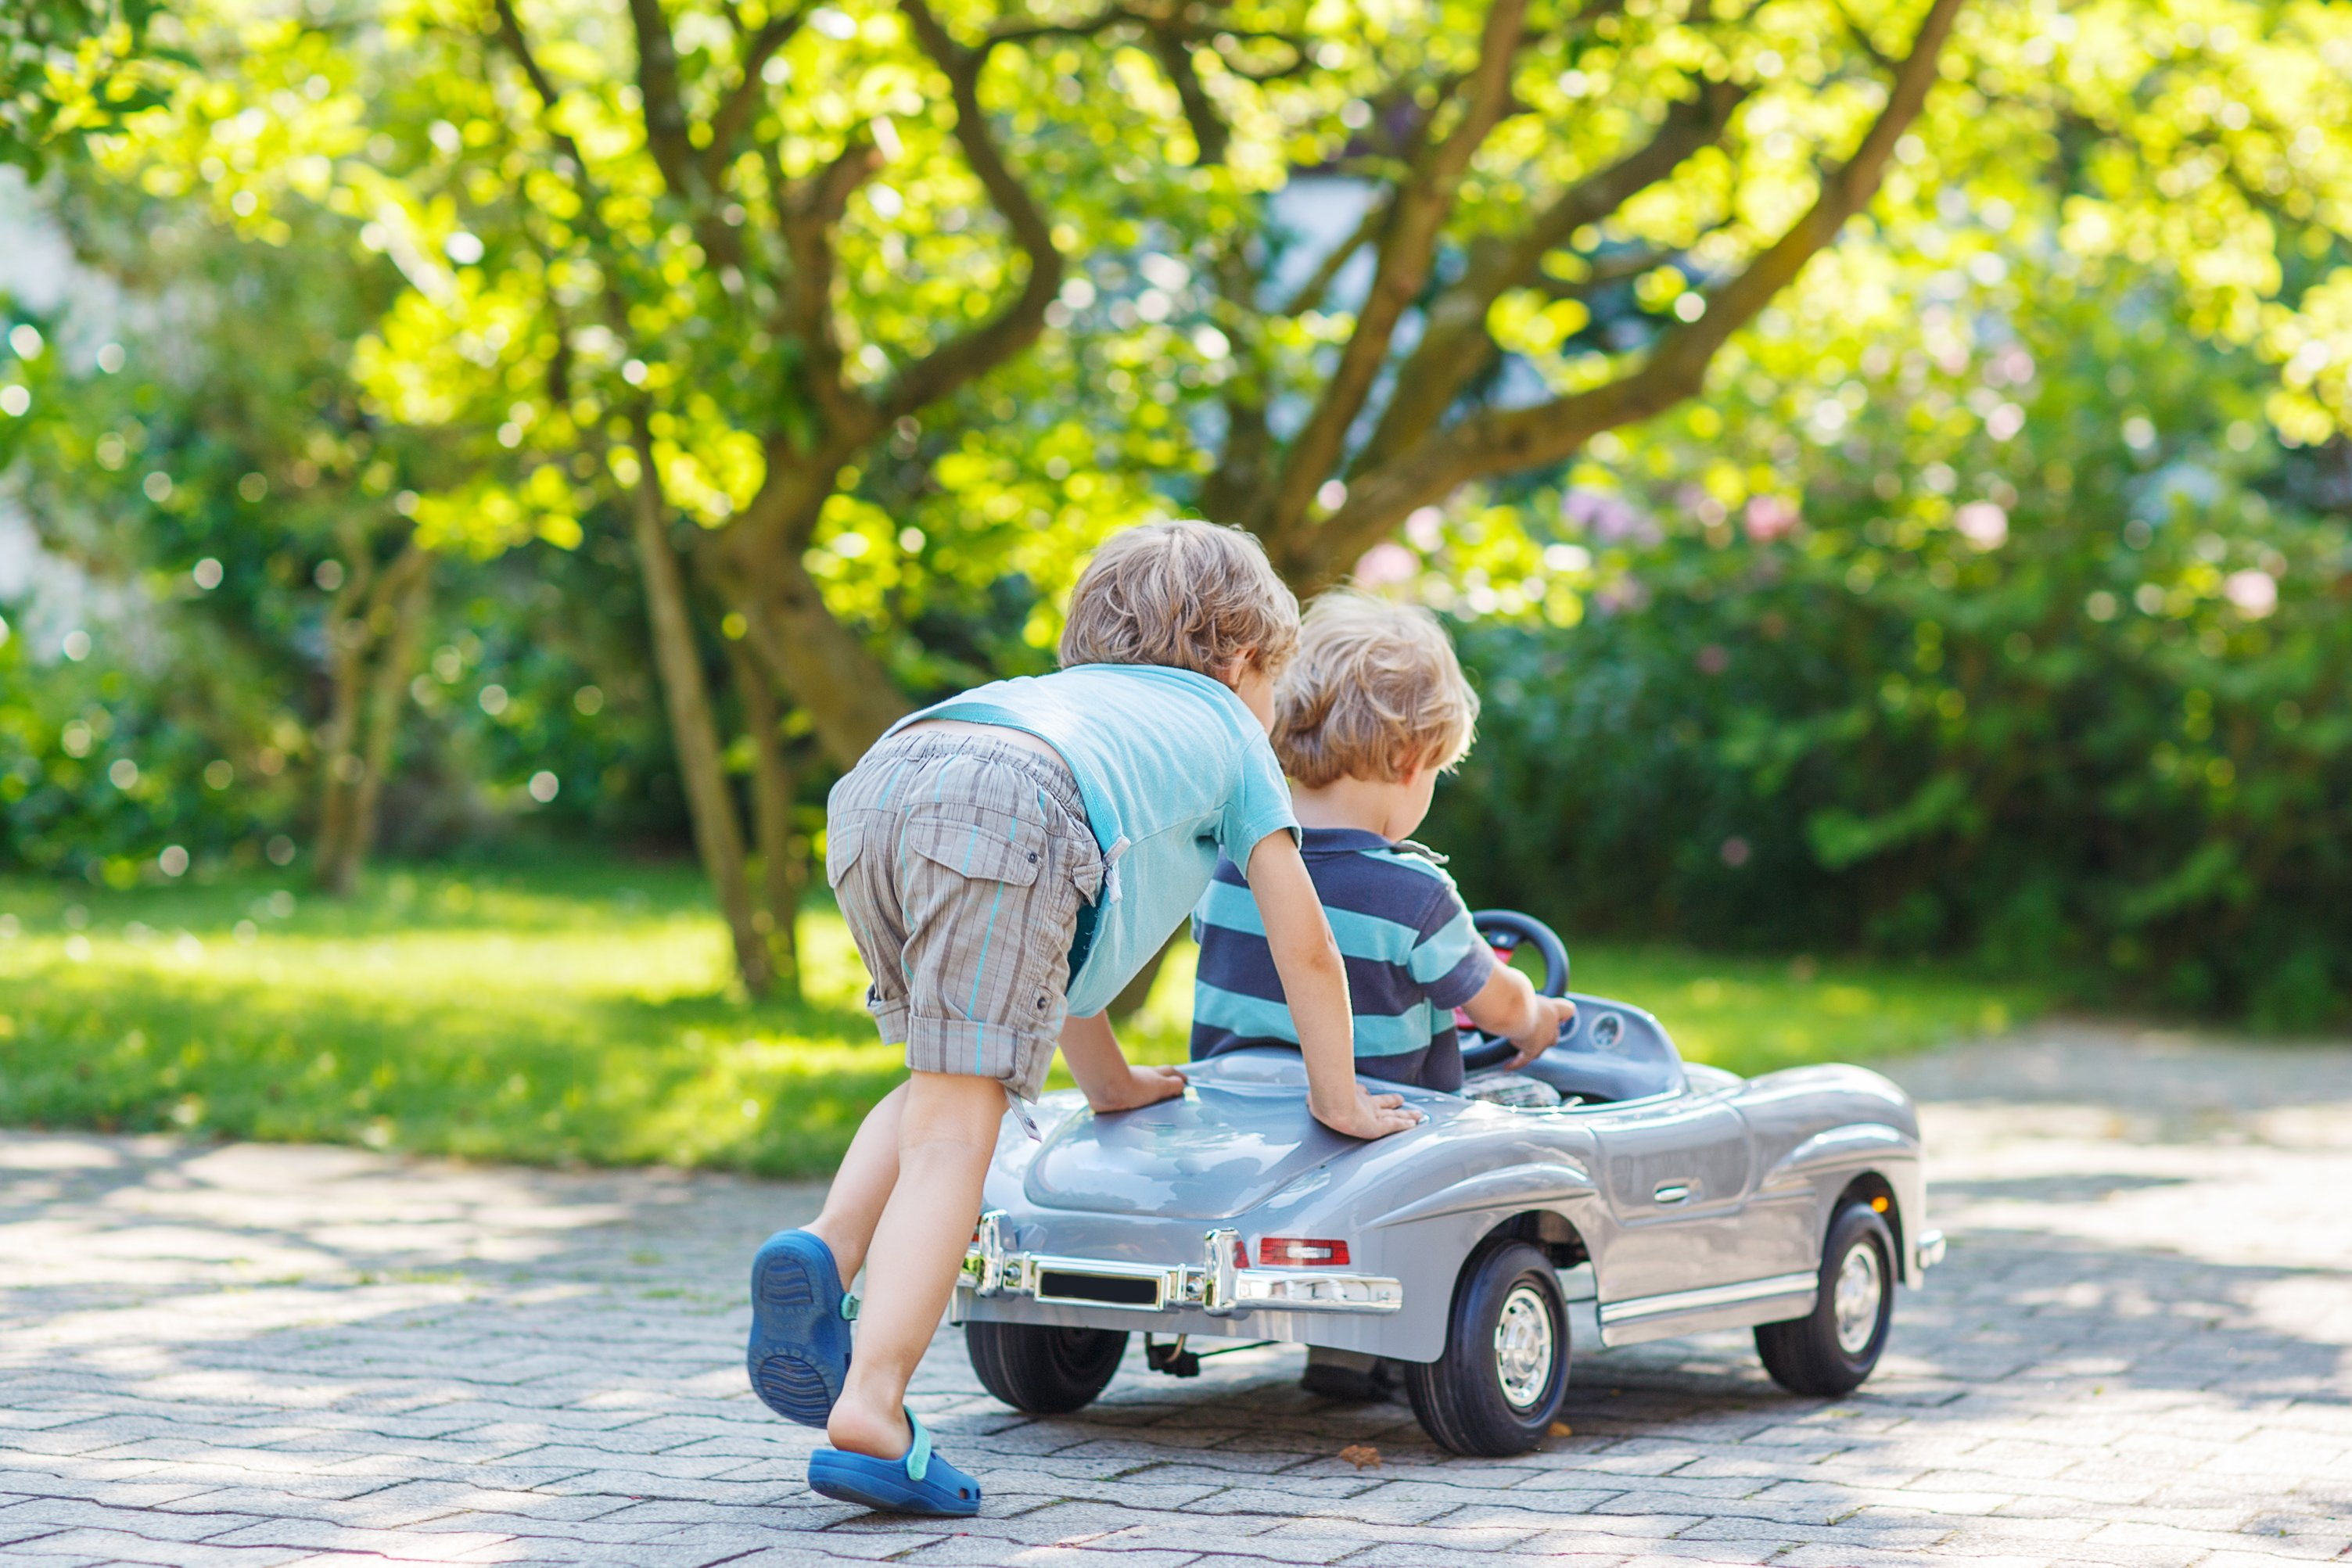 Two children playing with a toy car in a garden | Source: Shutterstock